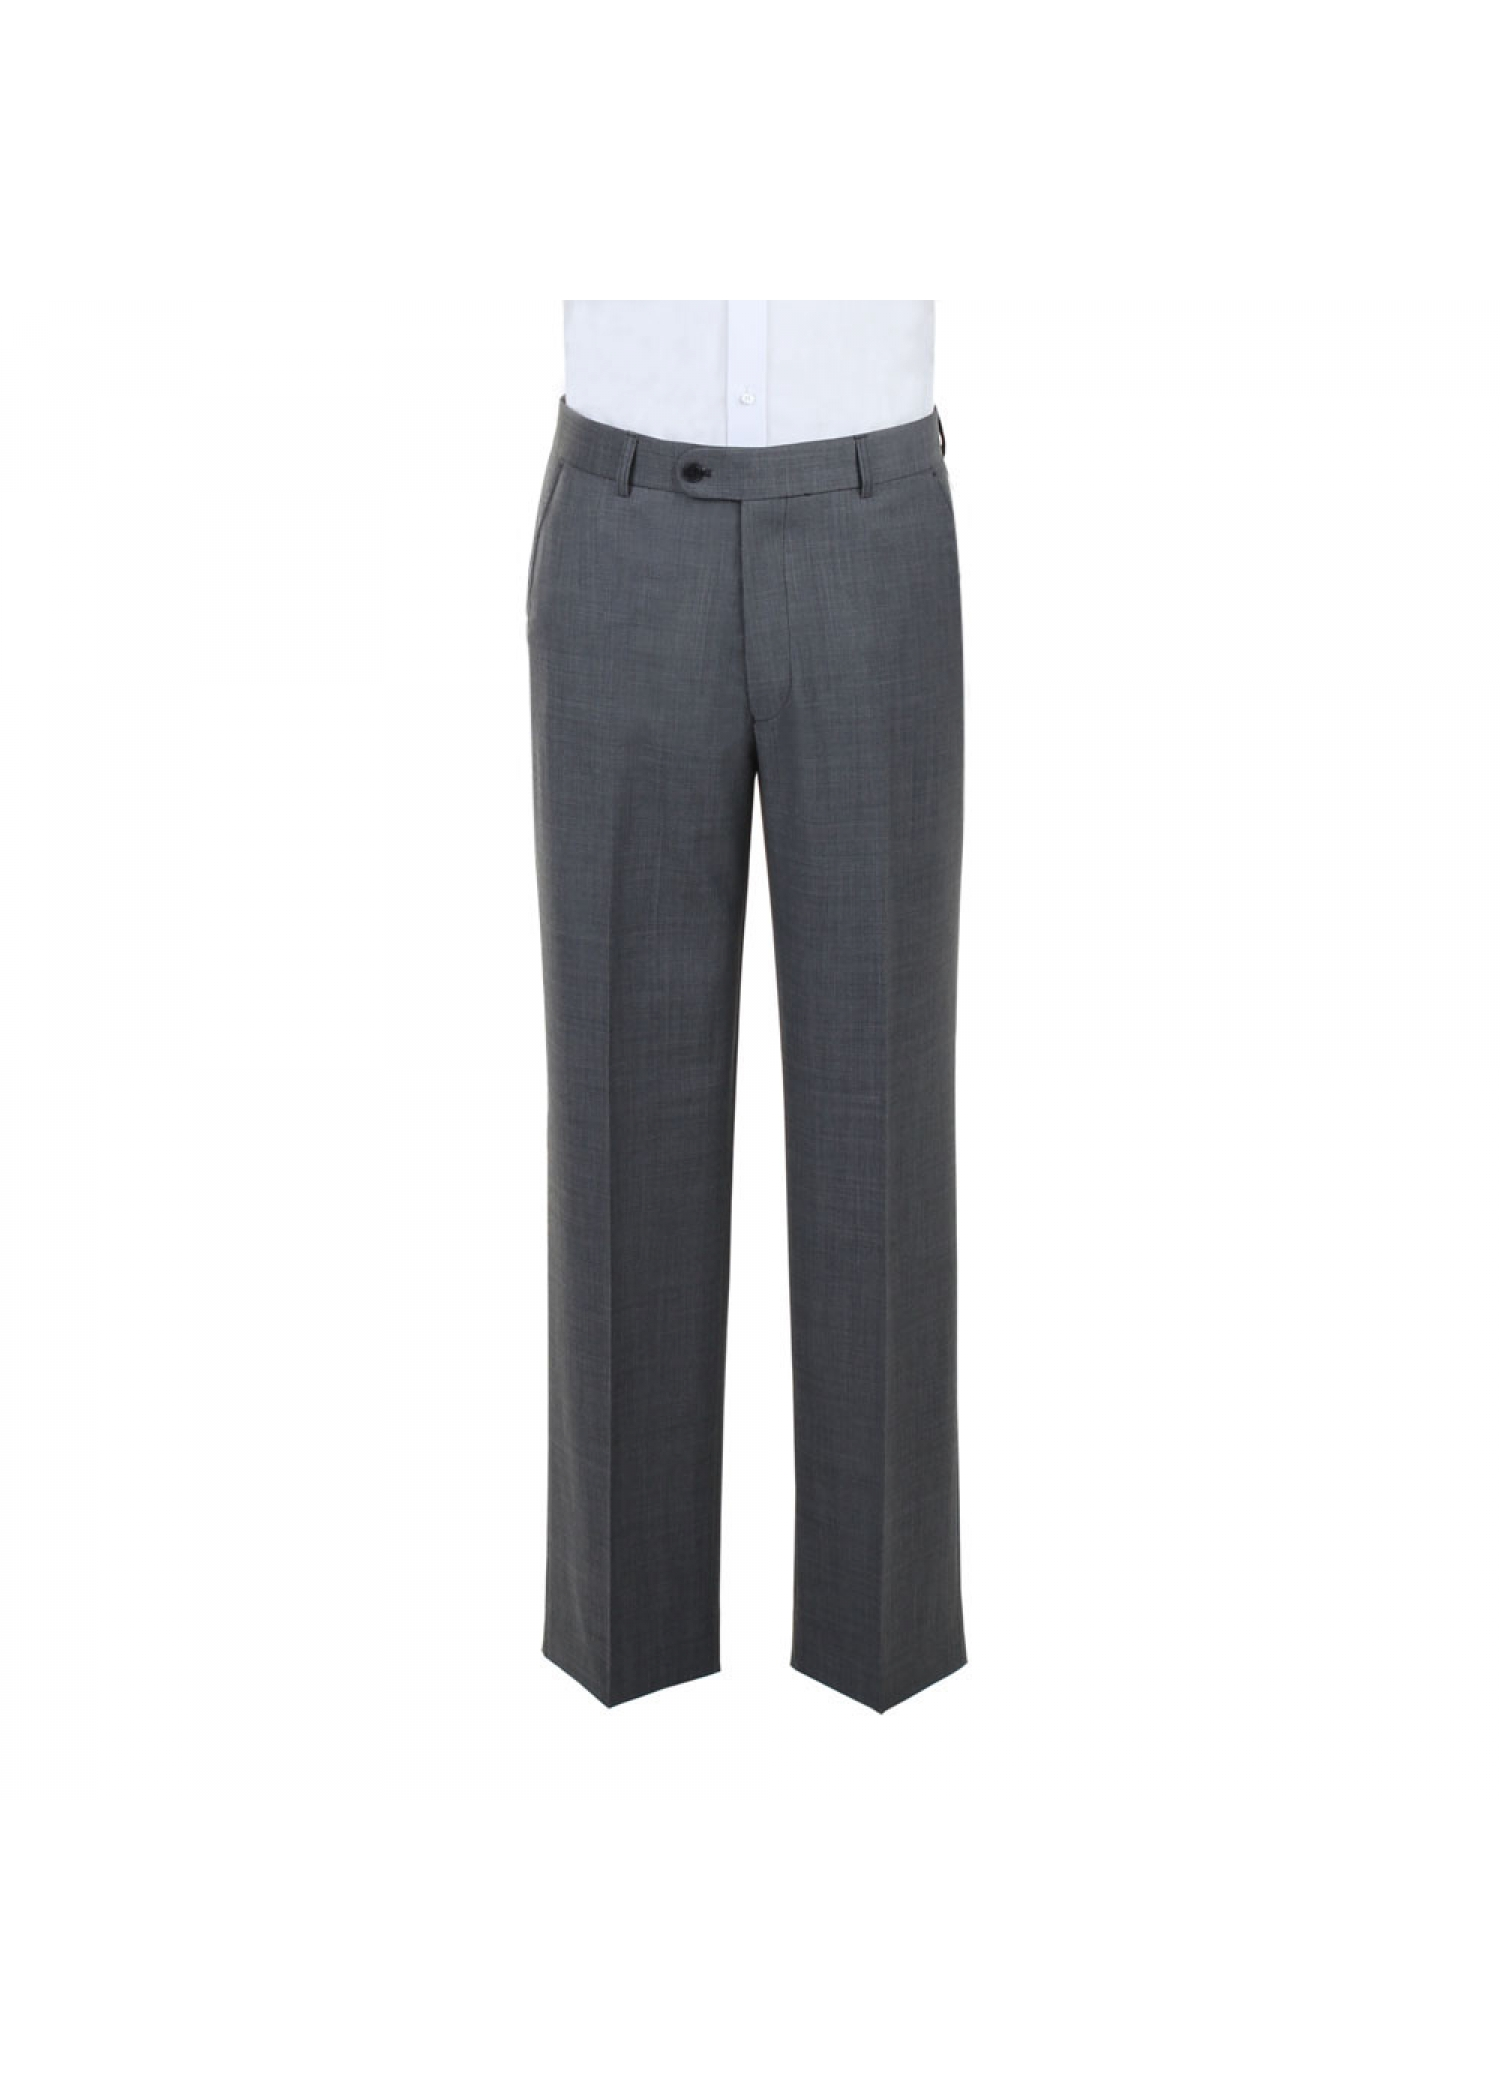 Scott silver grey trousers